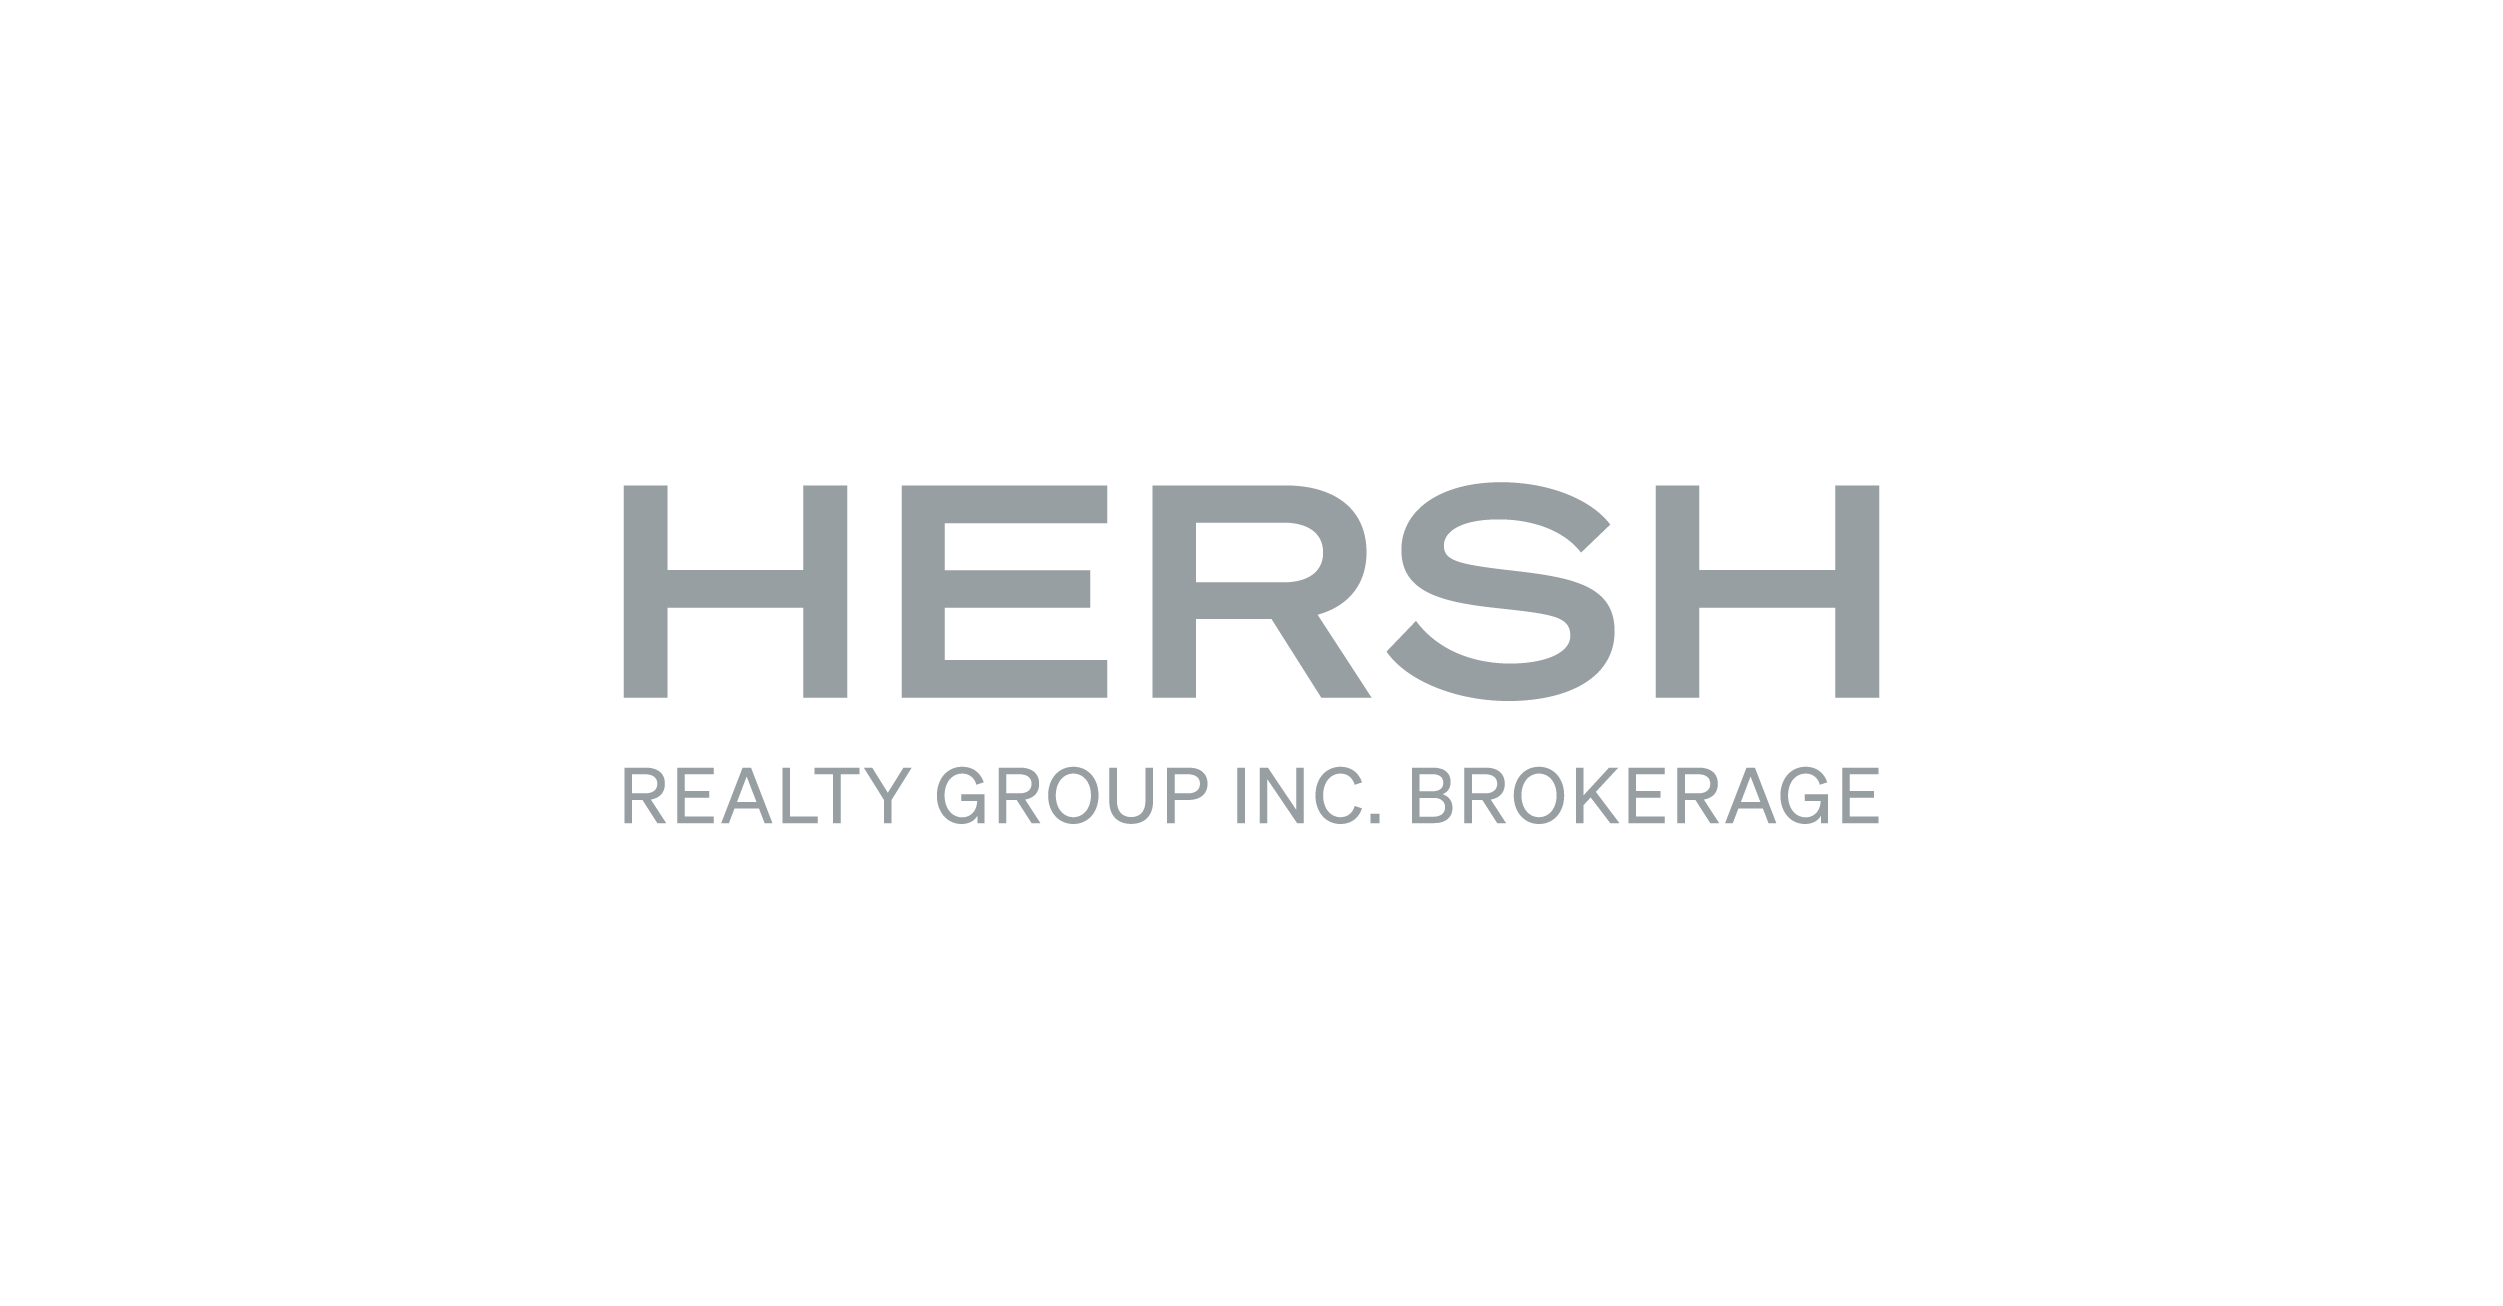 HERSH REALTY GROUP